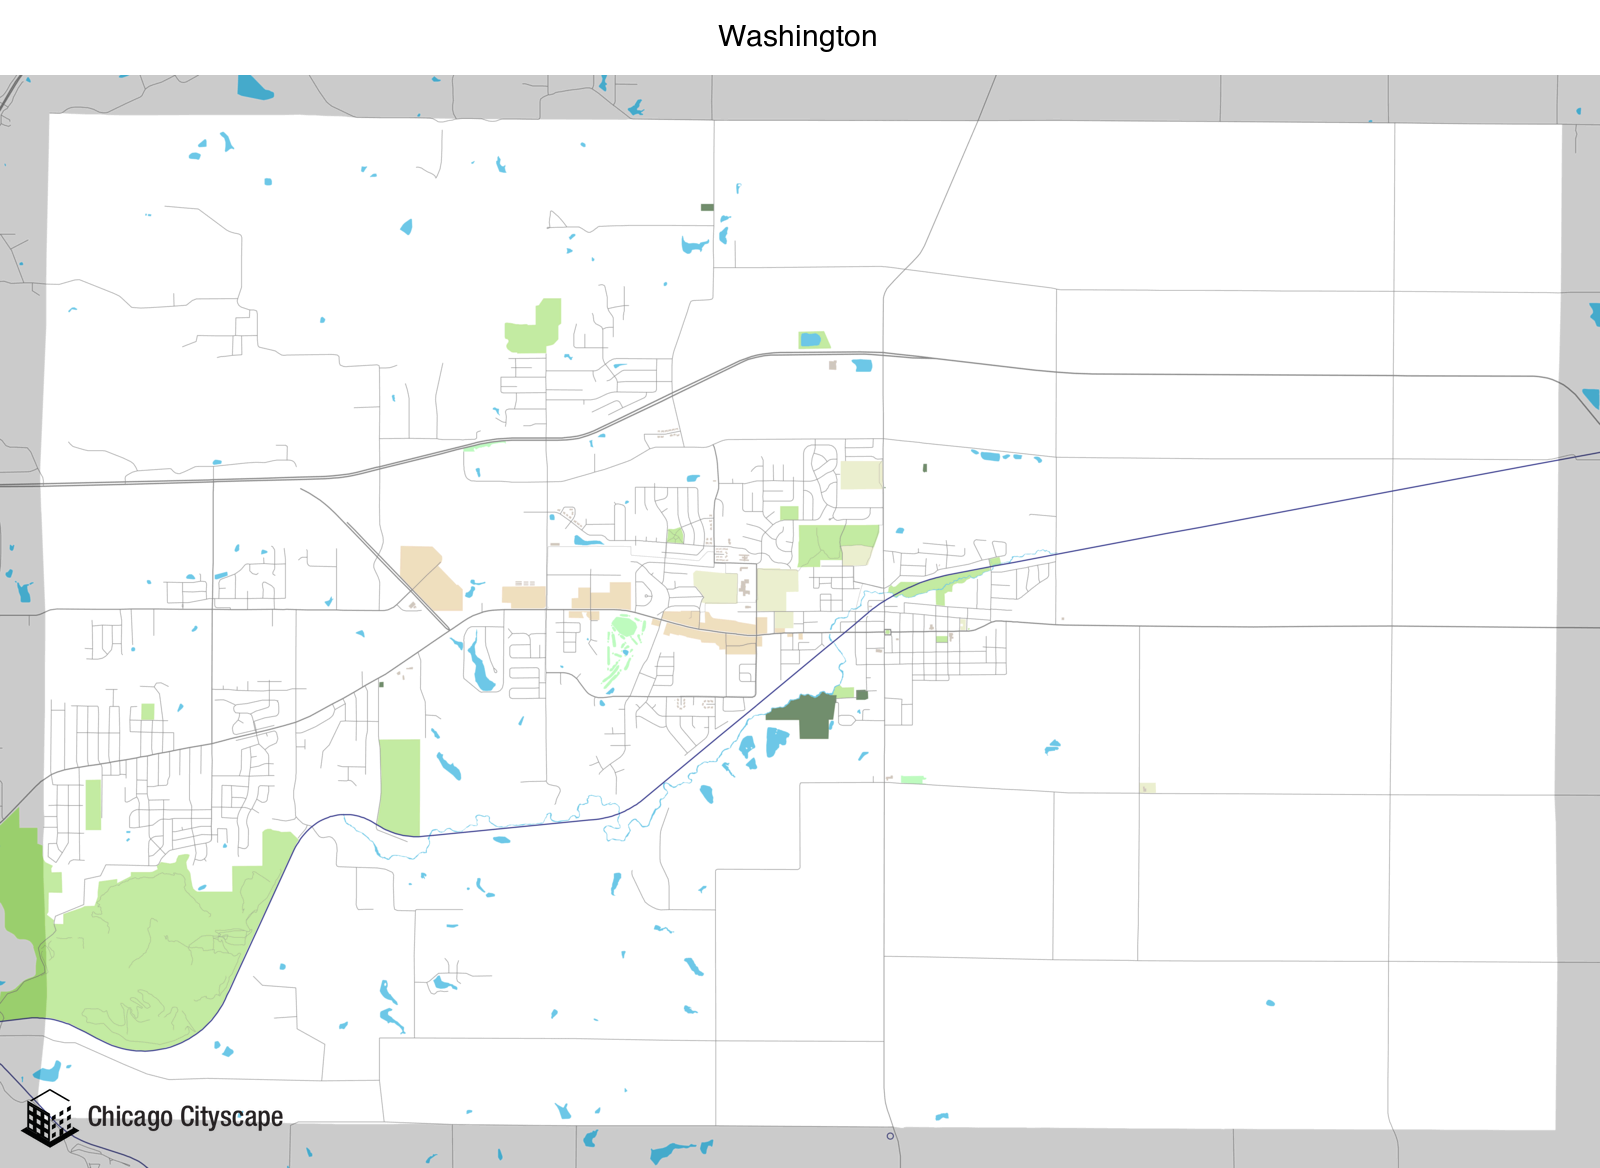 Map Of Washington State With Cities And Towns, Map Of Washington Designed By Chicago Cityscape, Map Of Washington State With Cities And Towns